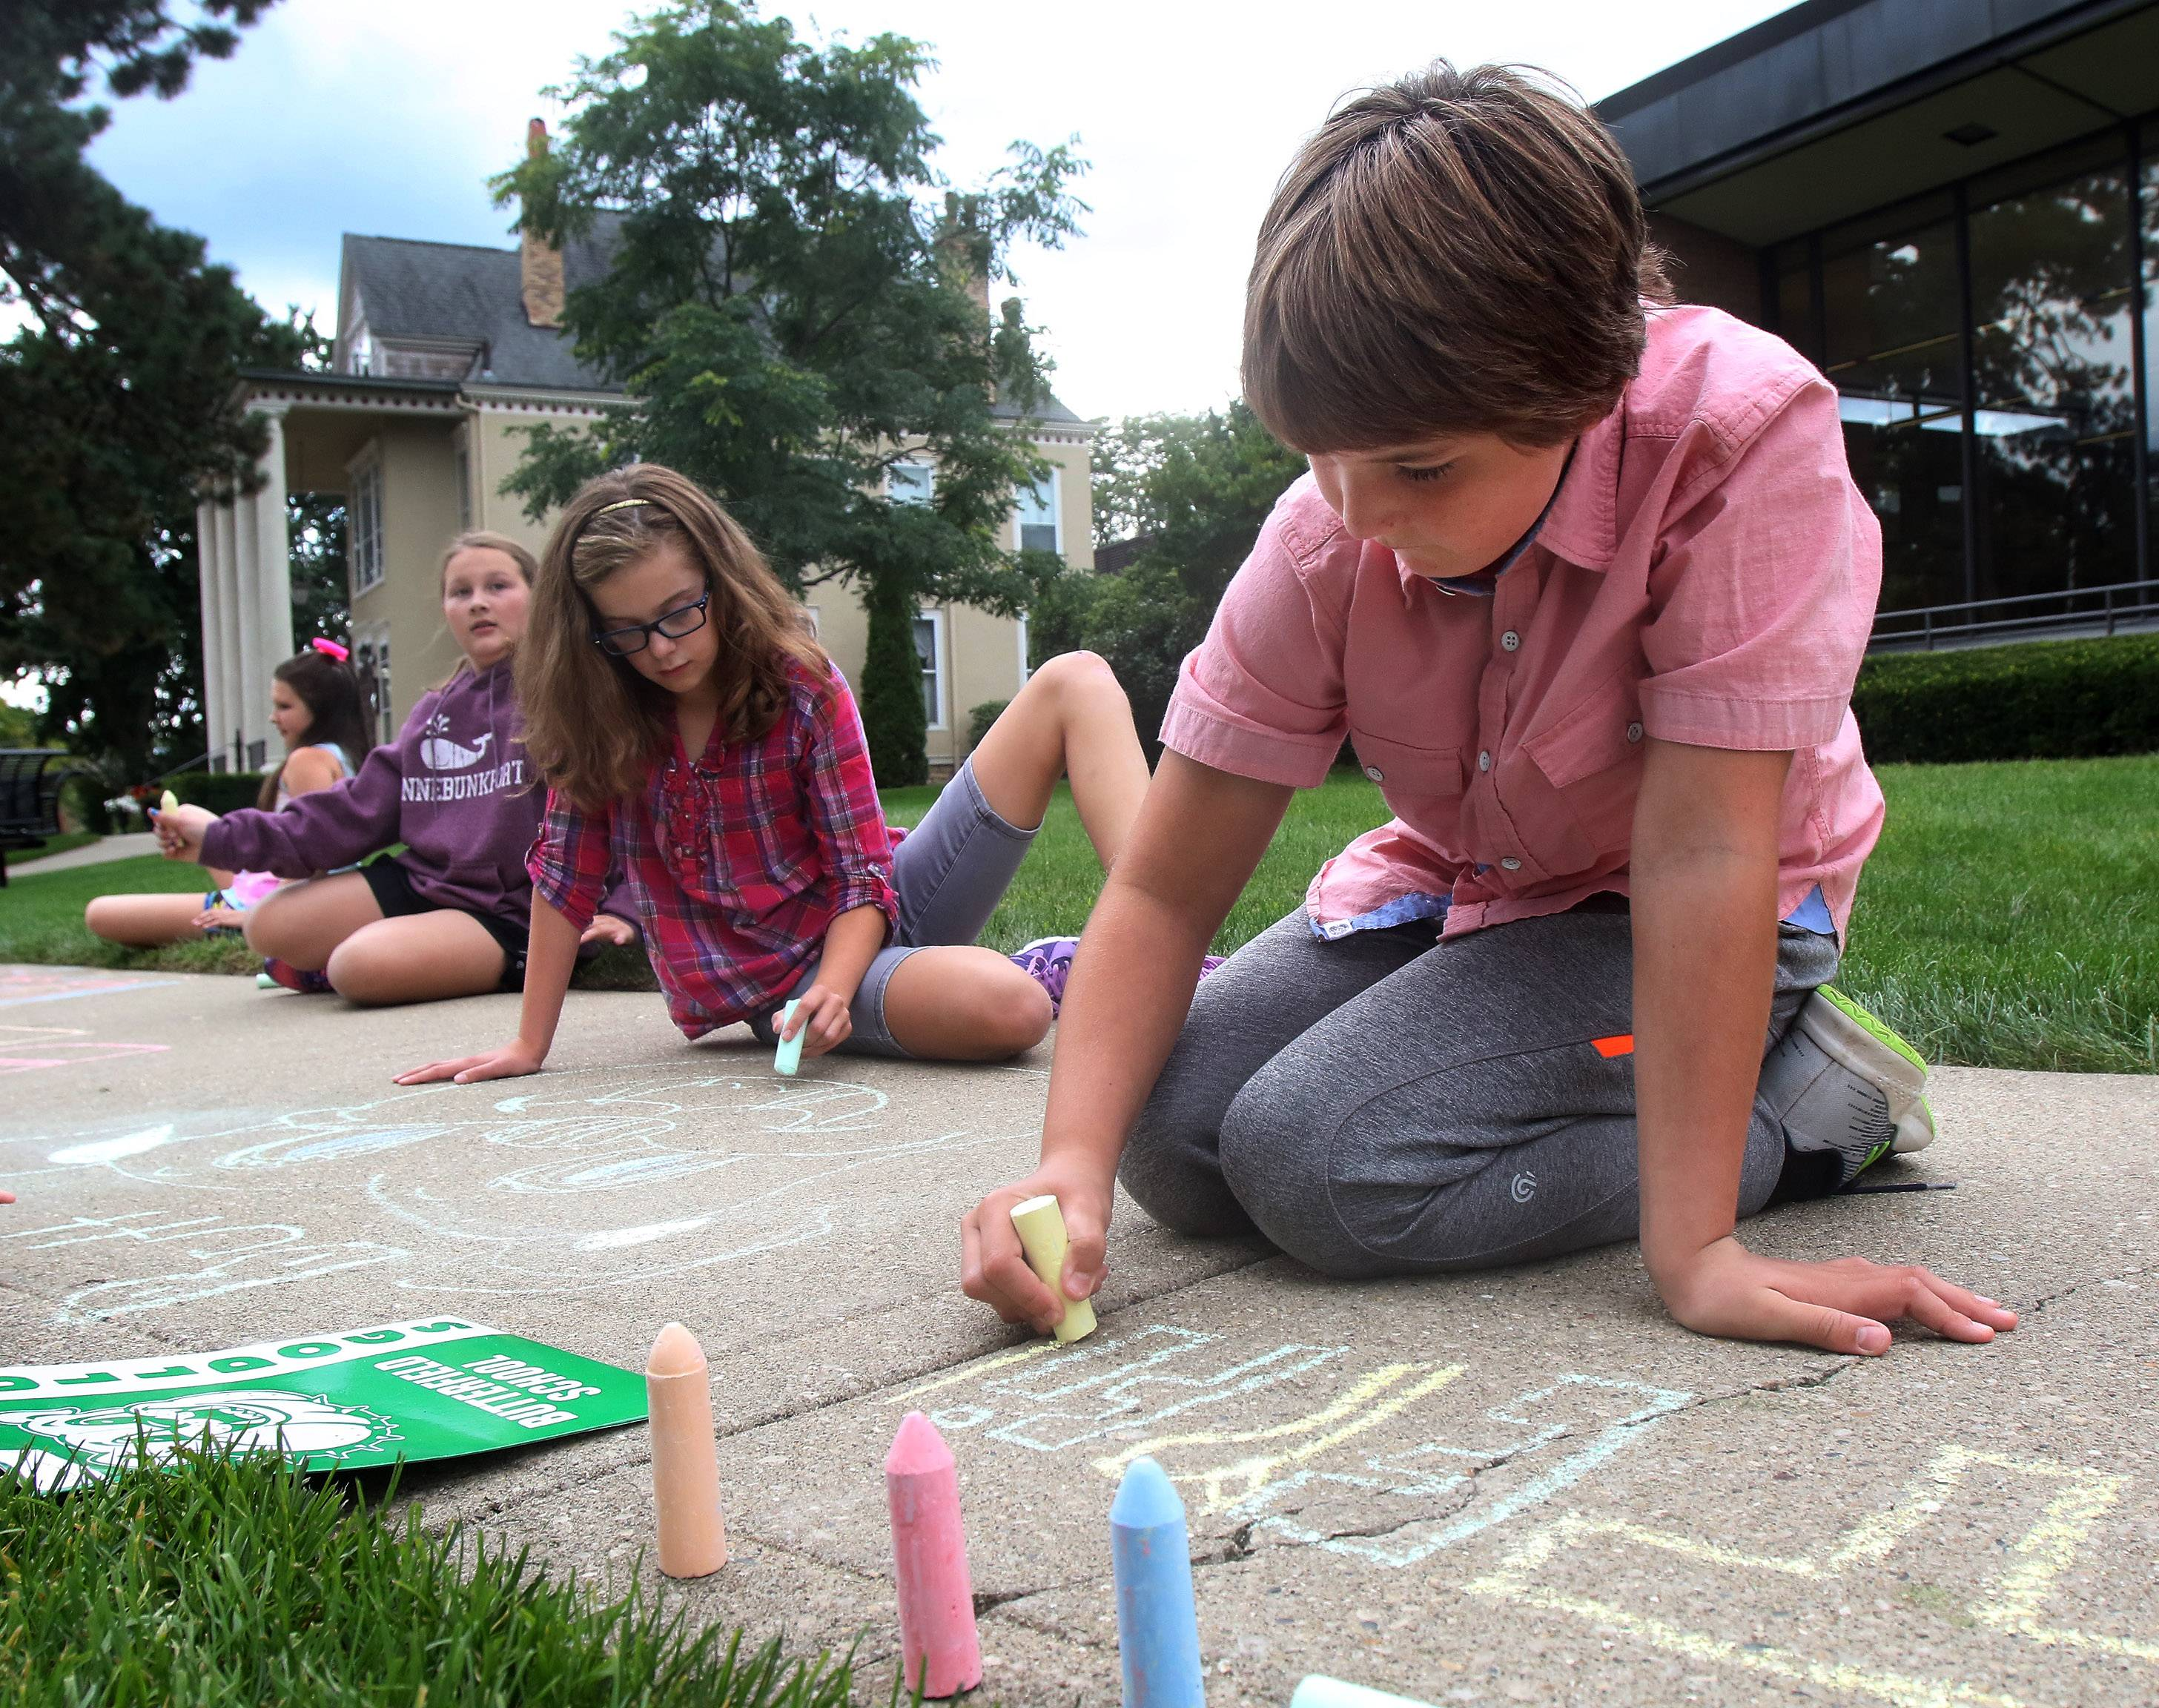 Butterfield School fifth-grade students Katelyn Rein, right, and Olivia Steffensen draw on the sidewalk around Cook Park in Libertyville on Thursday.